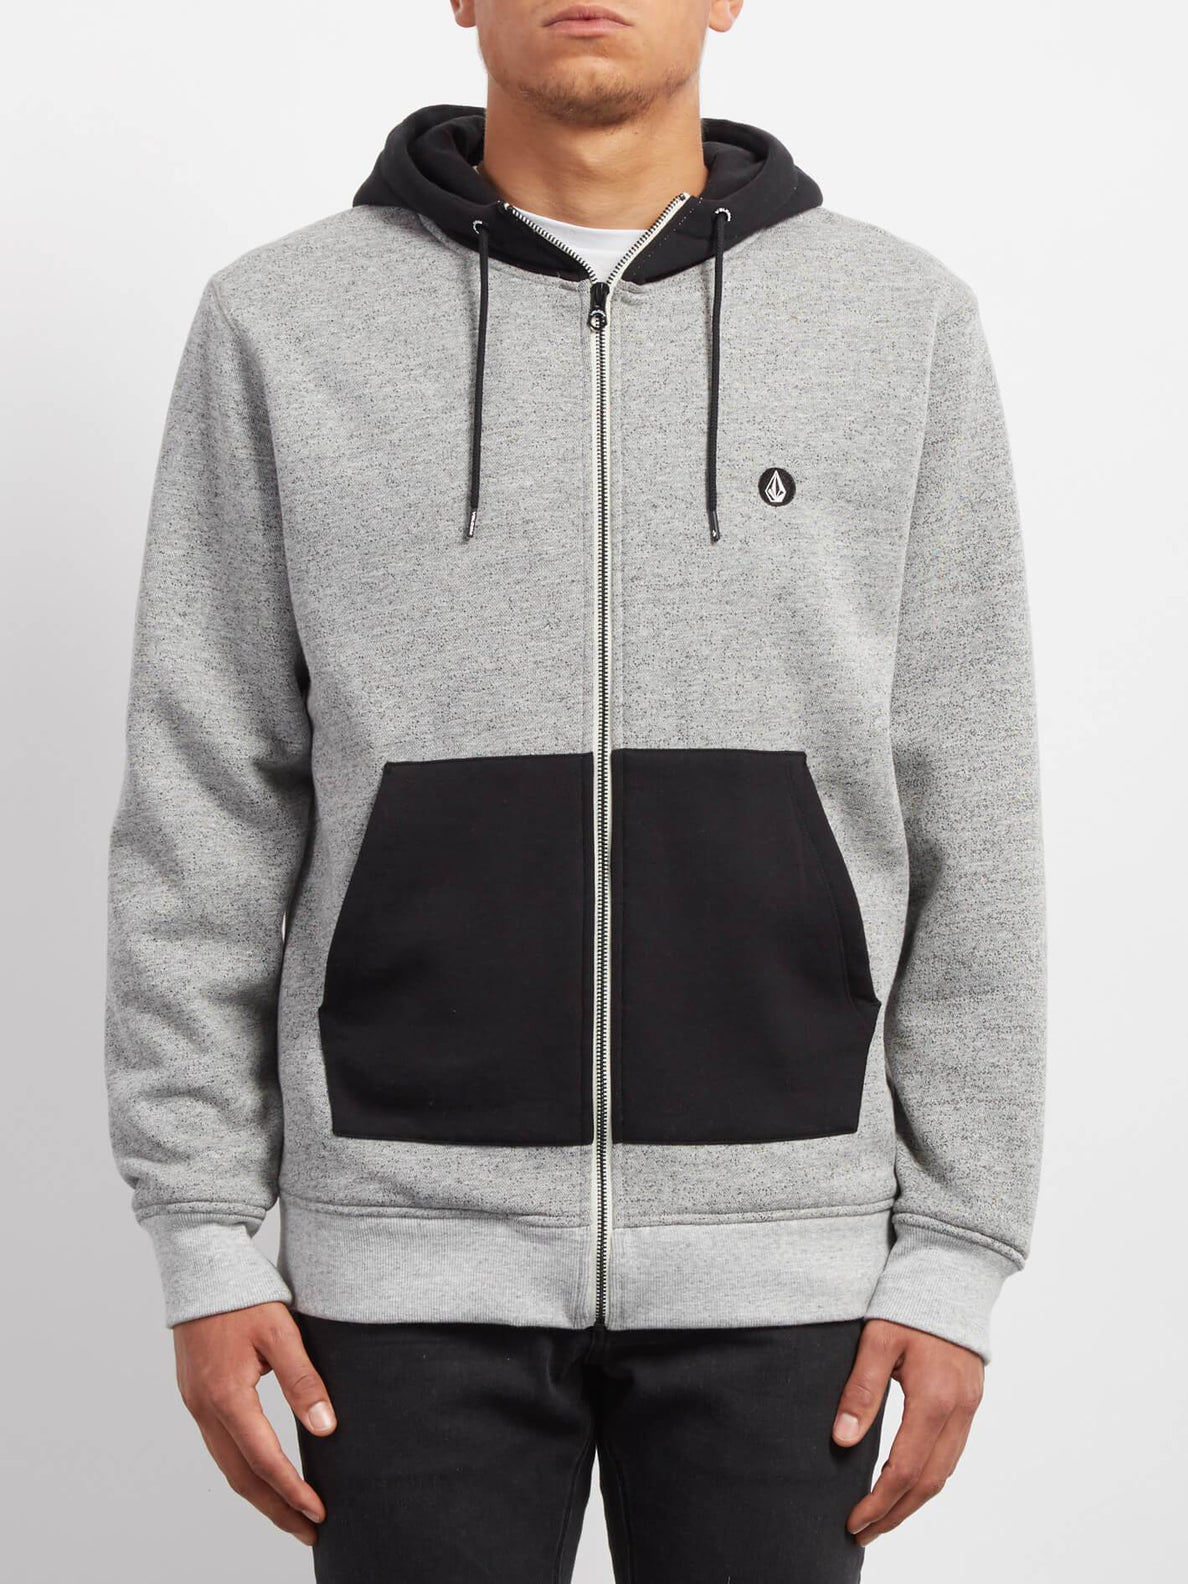 Grey Sweat Lined Factual Grey Lined Factual Heather Factual Sweat Heather Sweat qvnrHvwaOx